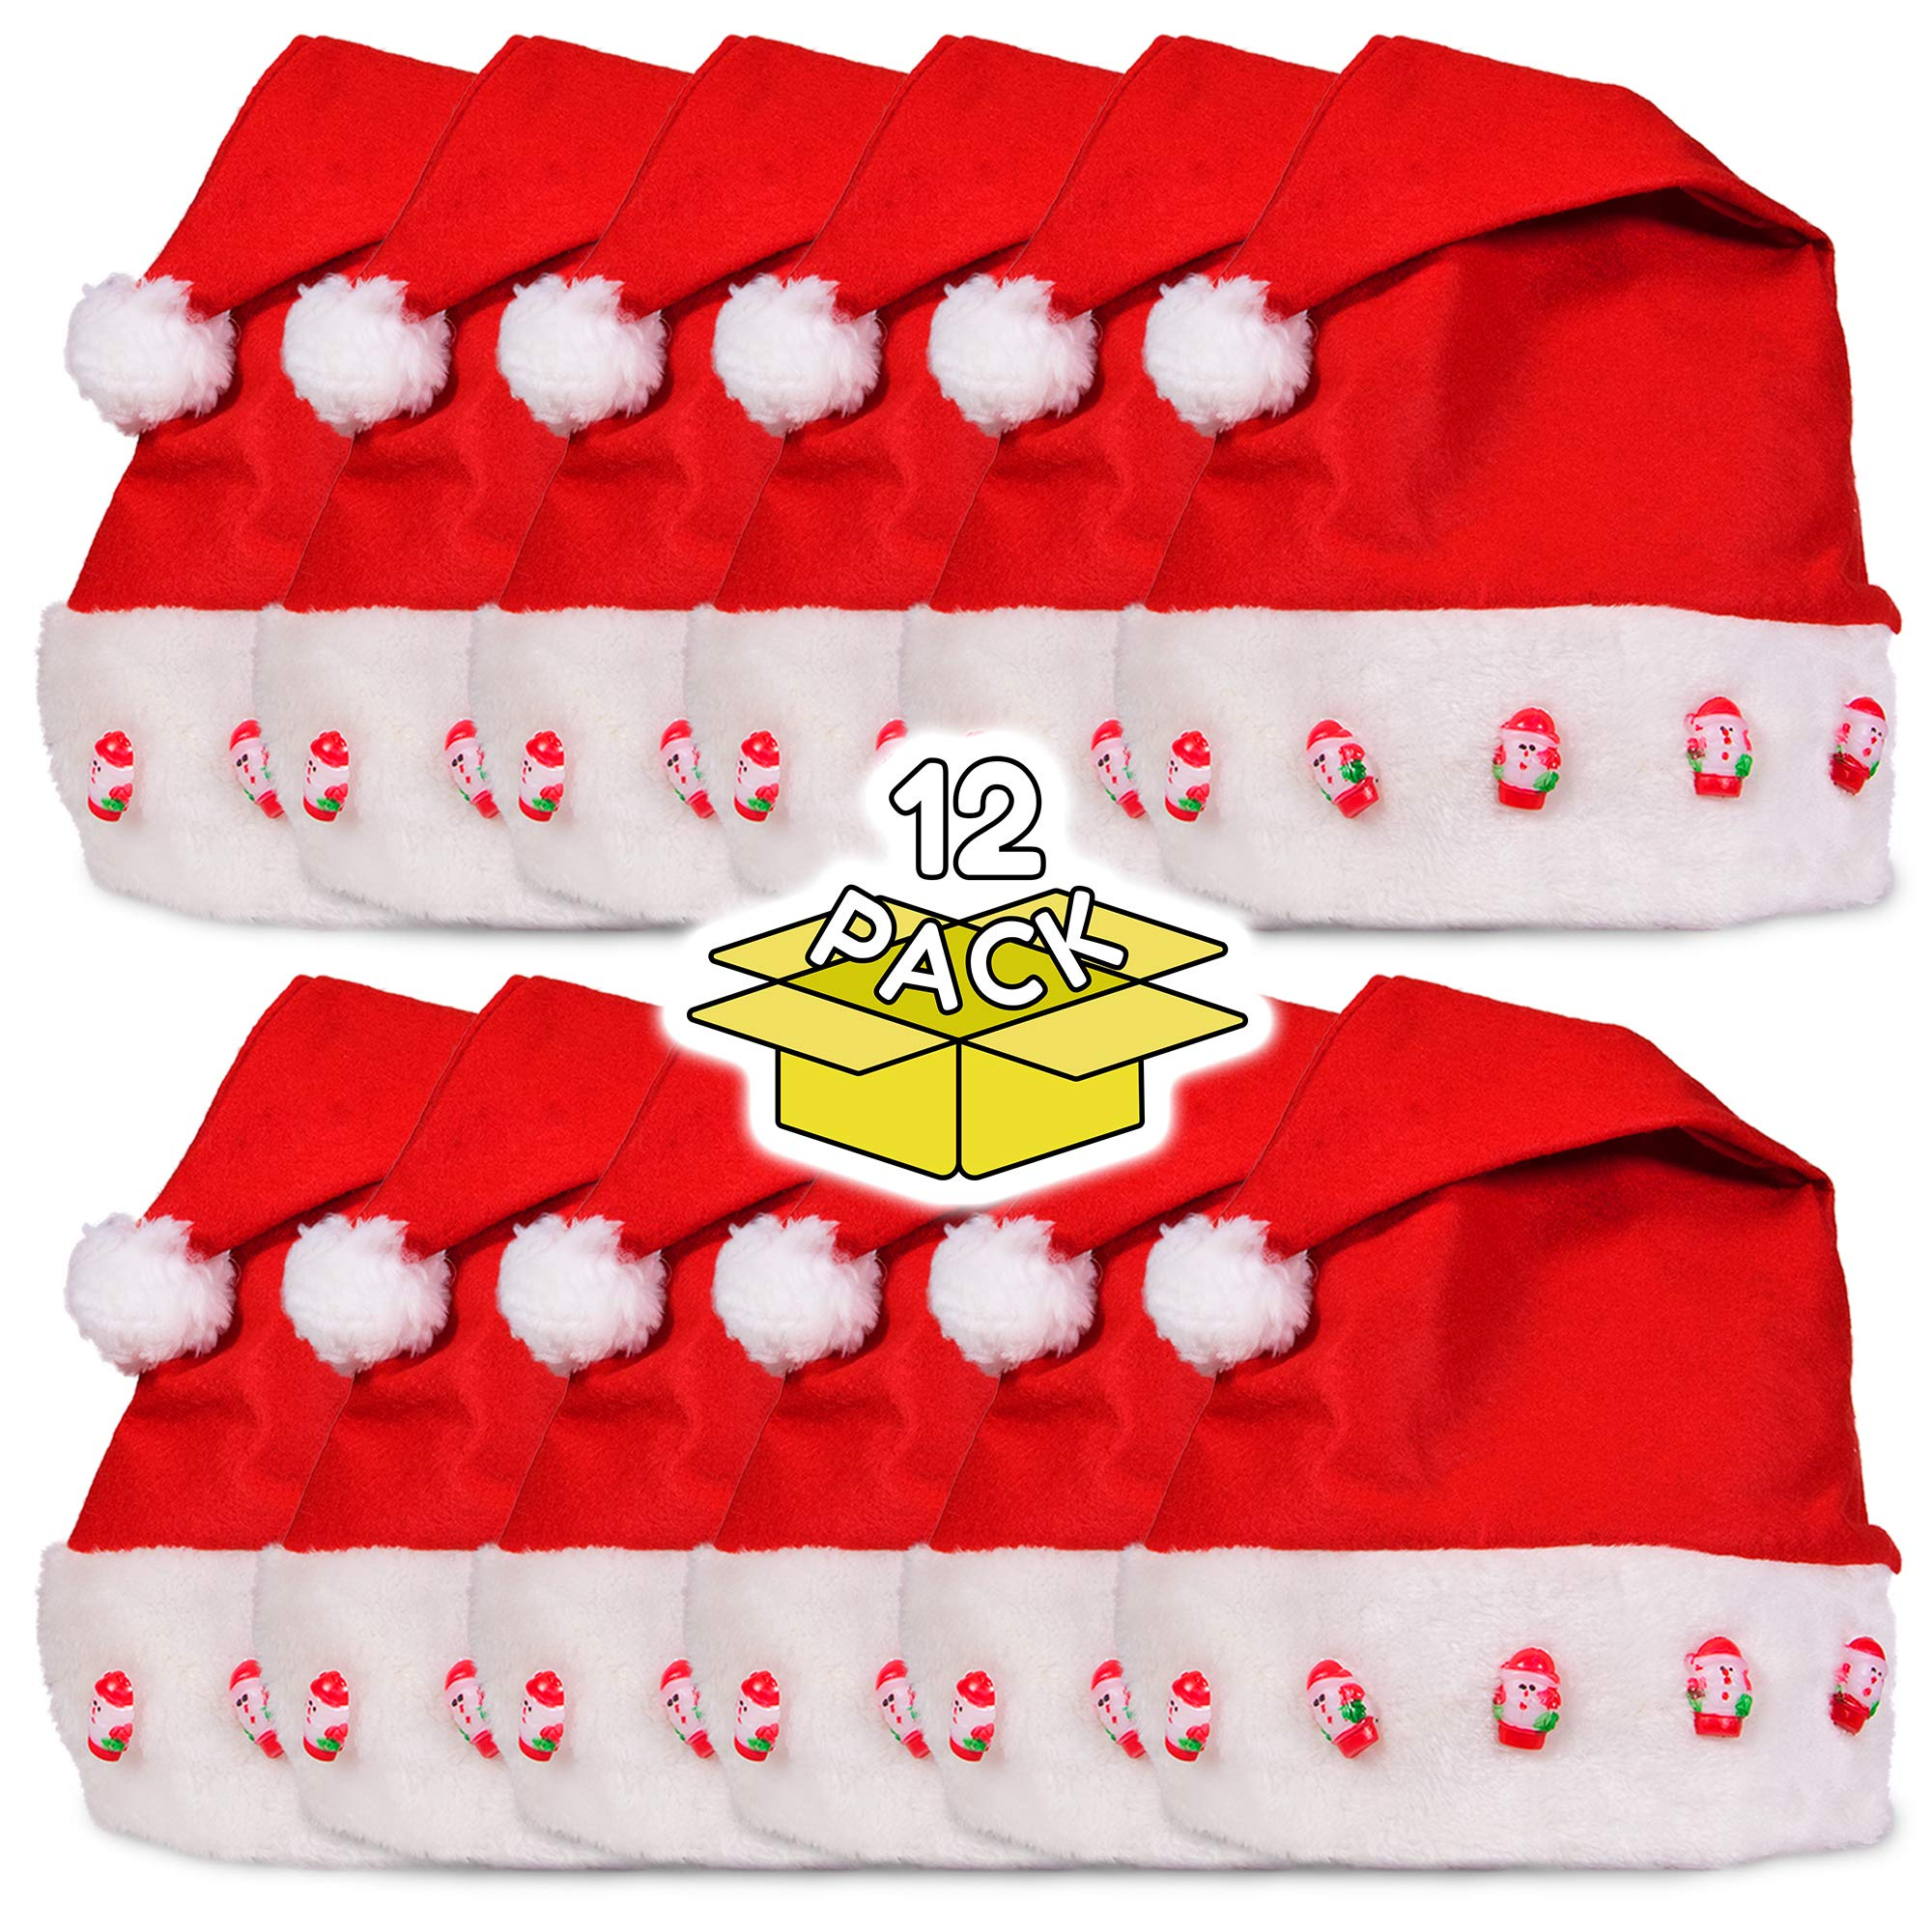 LED Light Up Blinking Festive Christmas Santa Hat - Family 12 Pack